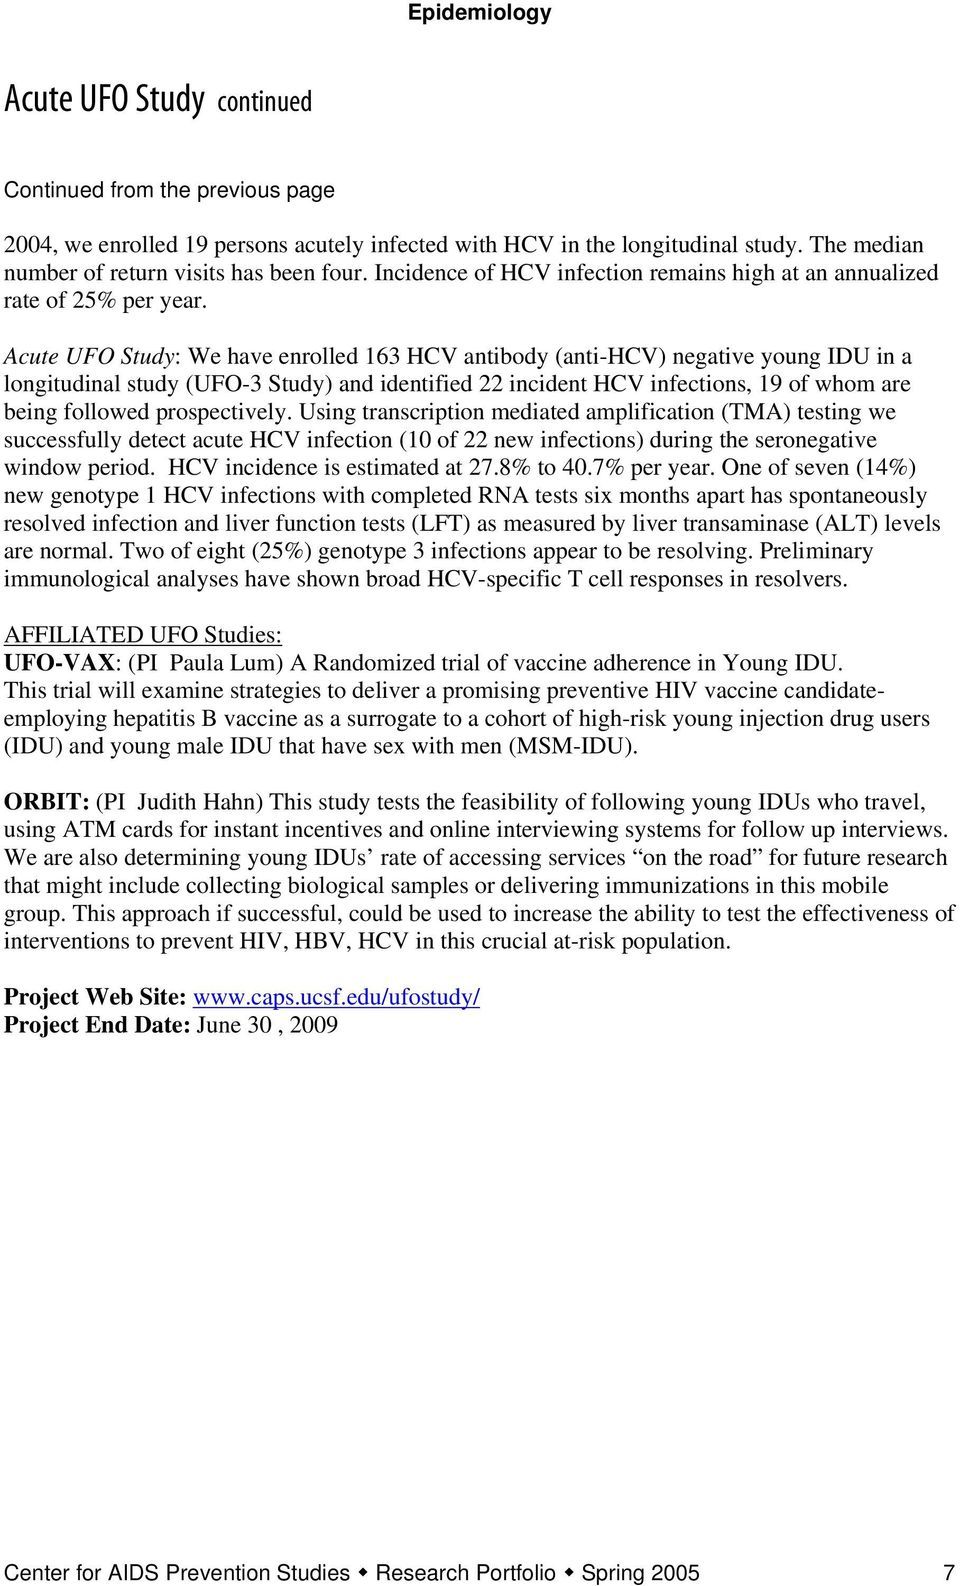 Acute UFO Study: We have enrolled 163 HCV antibody (anti-hcv) negative young IDU in a longitudinal study (UFO-3 Study) and identified 22 incident HCV infections, 19 of whom are being followed